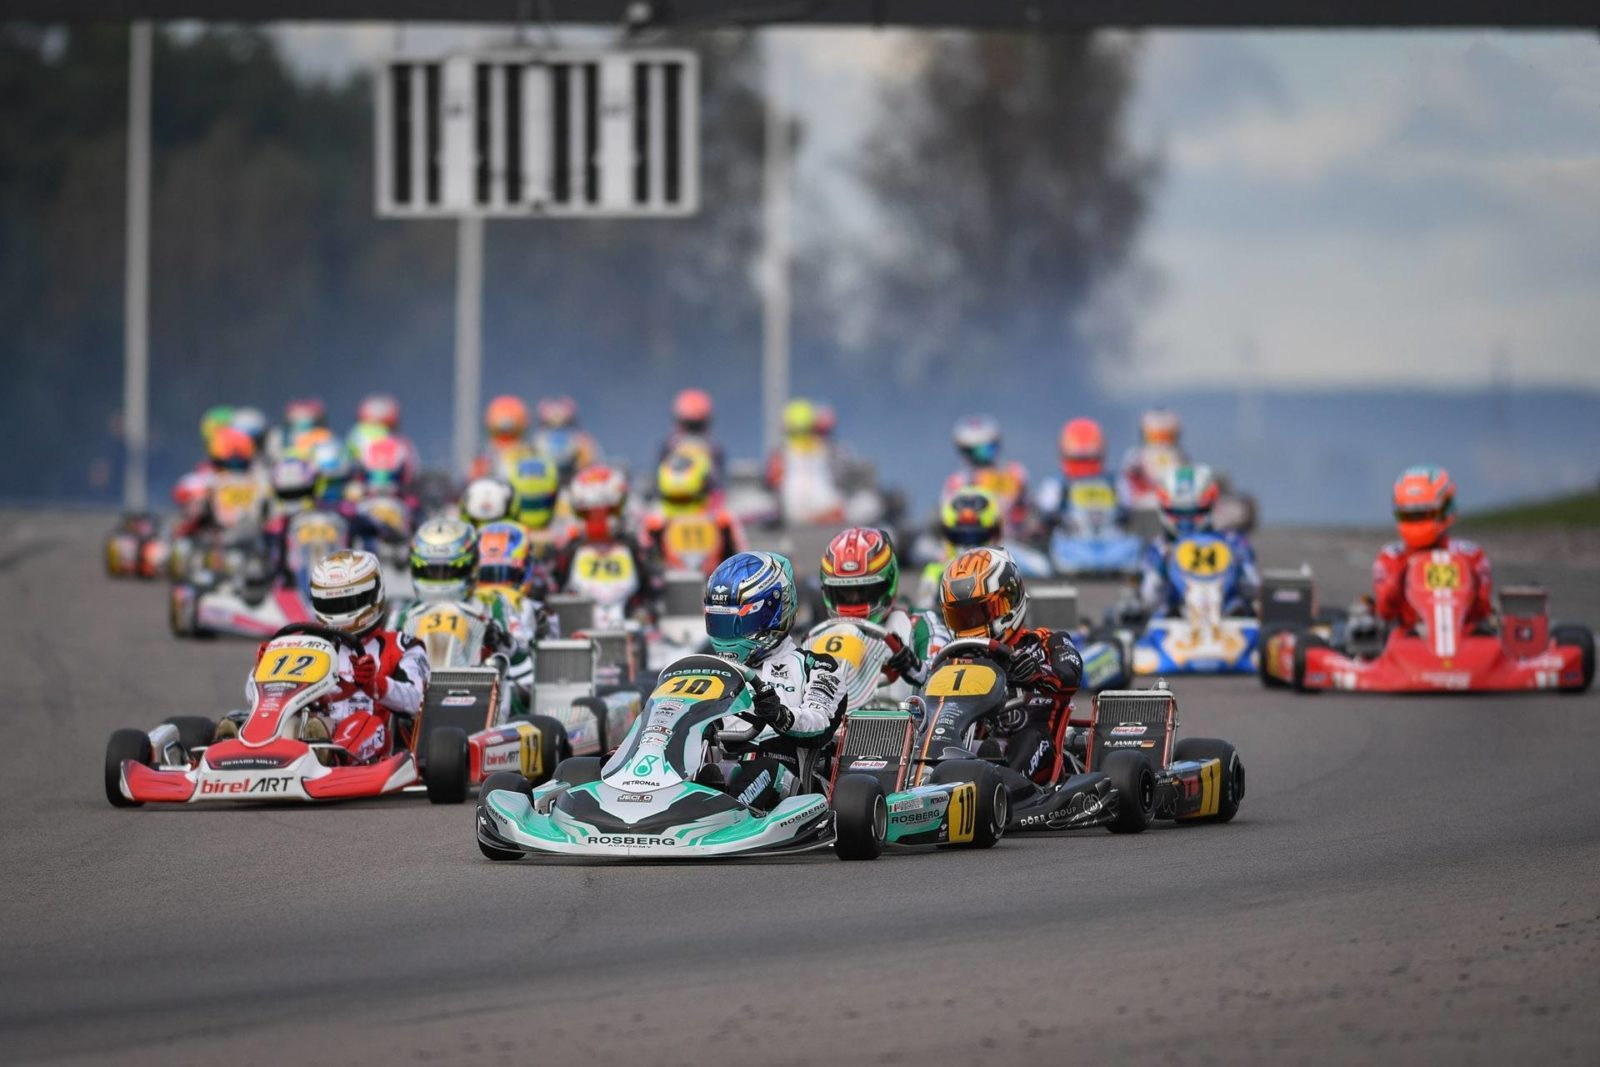 Opening corner of the OK category at the 2018 FIA Karting World Championship in Kristianstad, Sweden